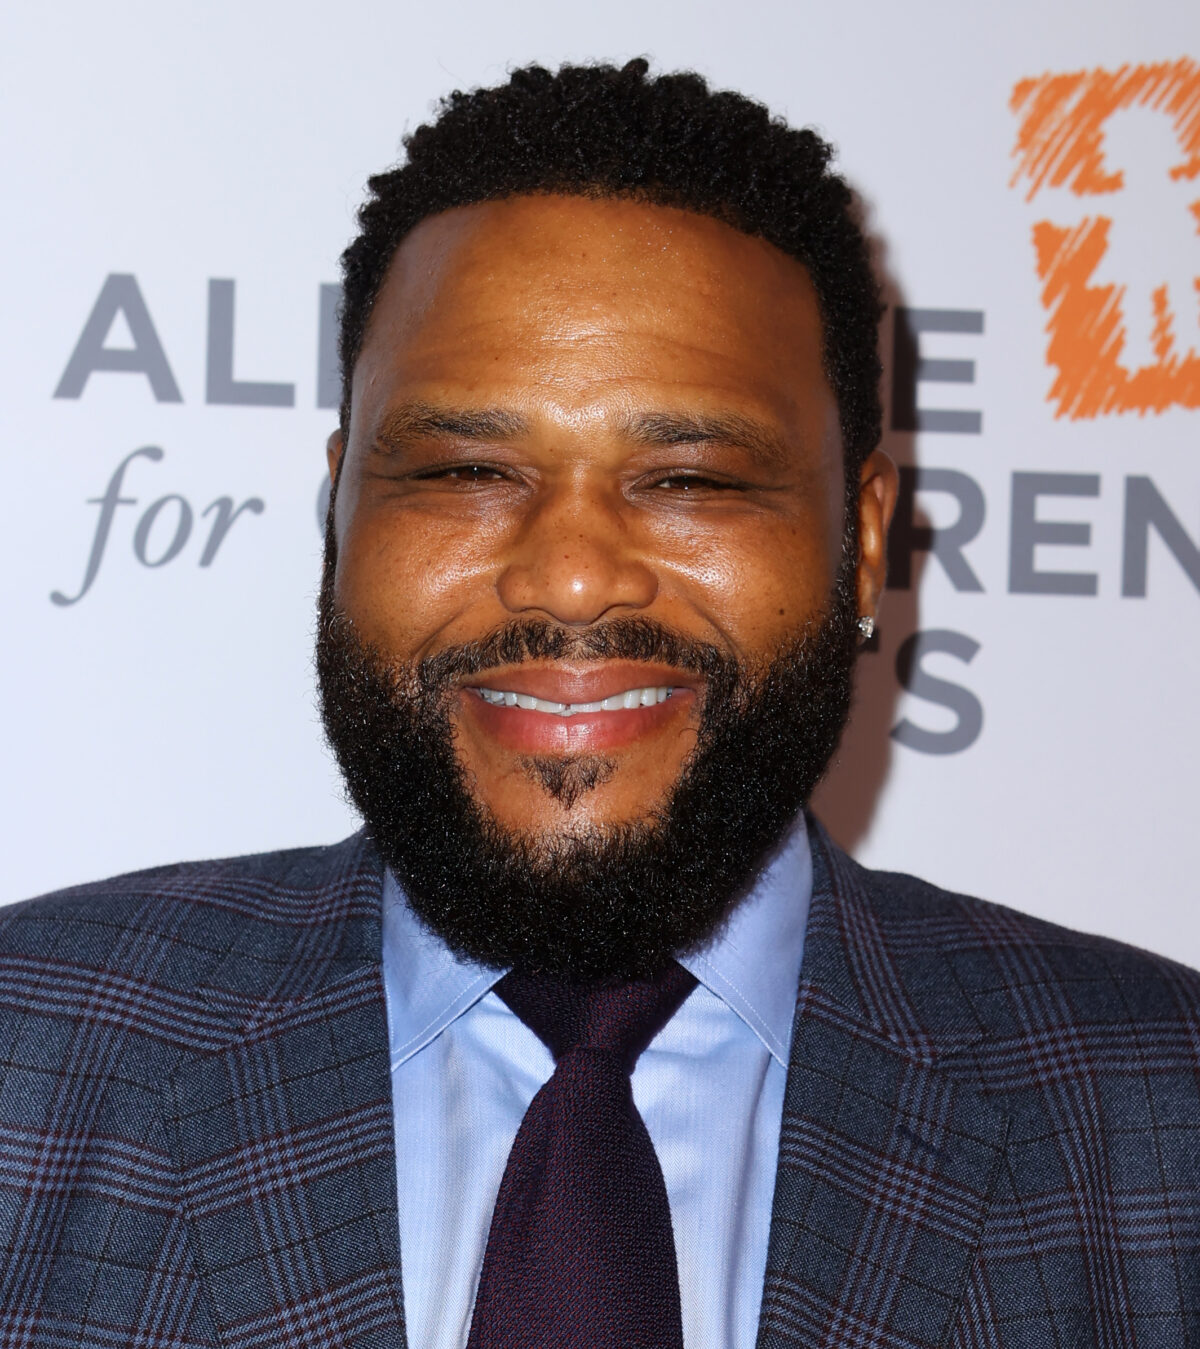 Anthony Anderson To Receive Star On The Hollywood Walk Of Fame Despite COVID-19 Pandemic